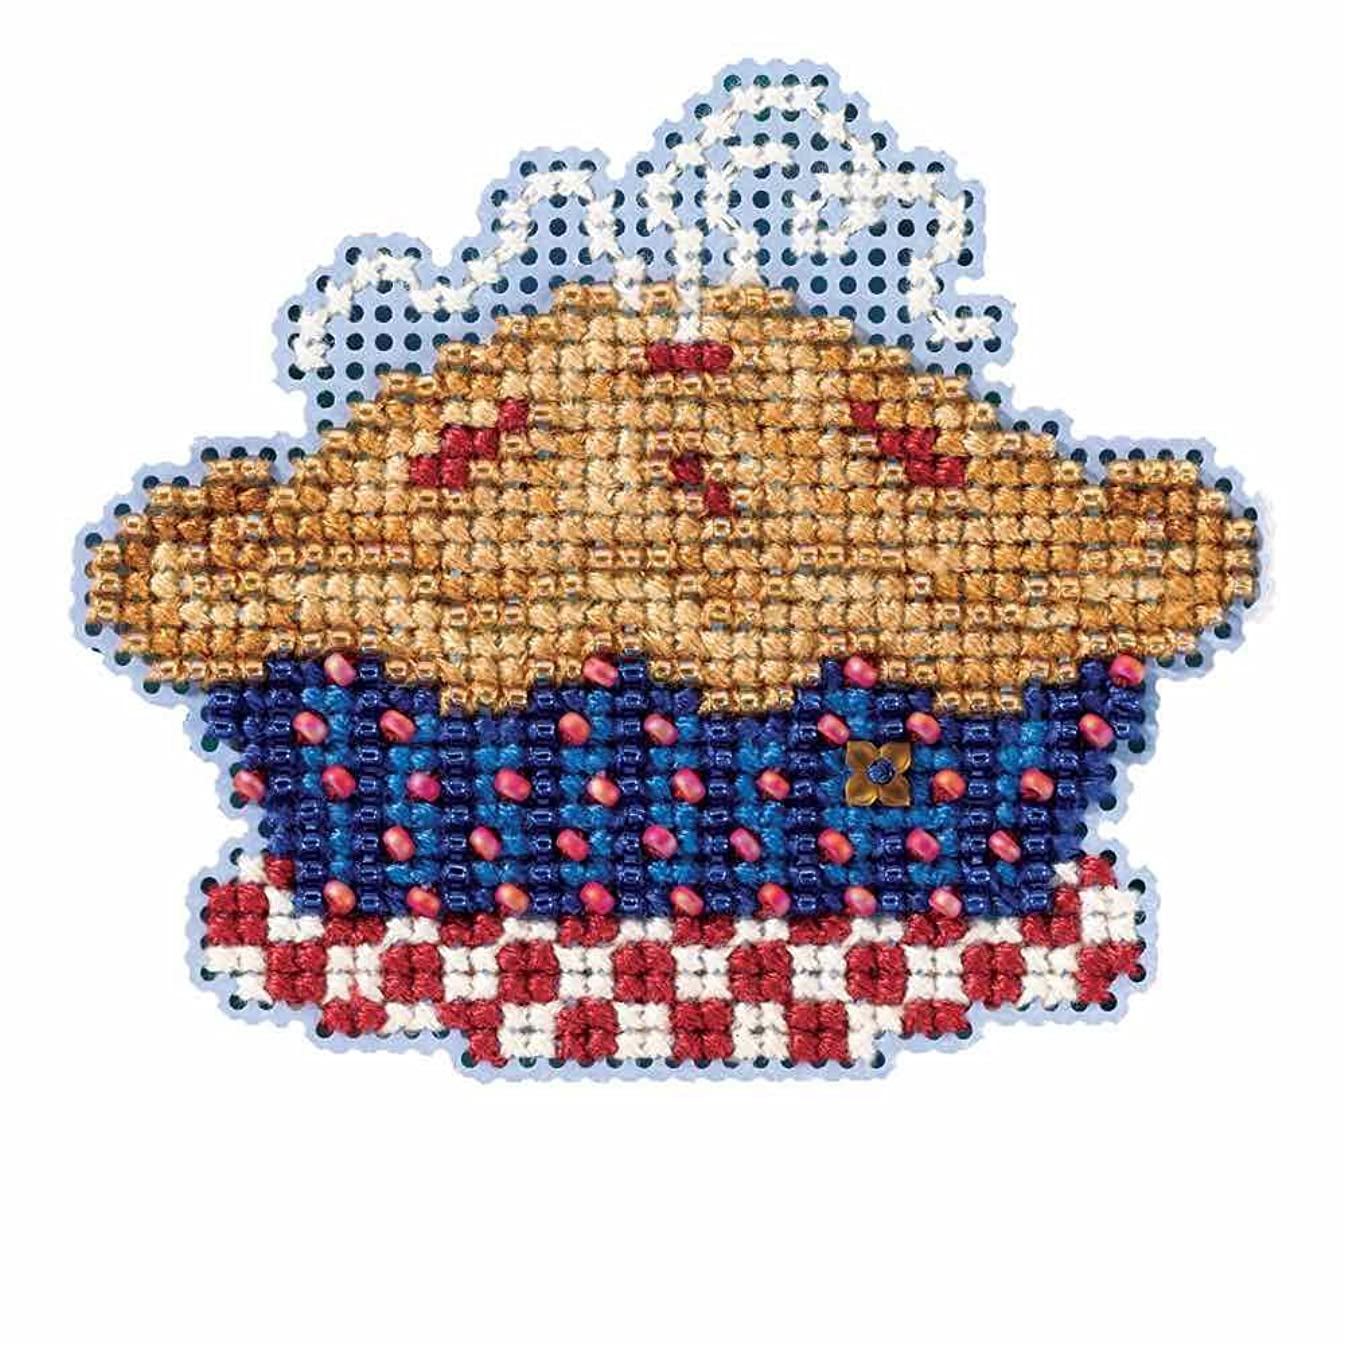 American Pie Beaded Counted Cross Stitch Ornament Kit Mill Hill 2016 Autumn Harvest MH181625